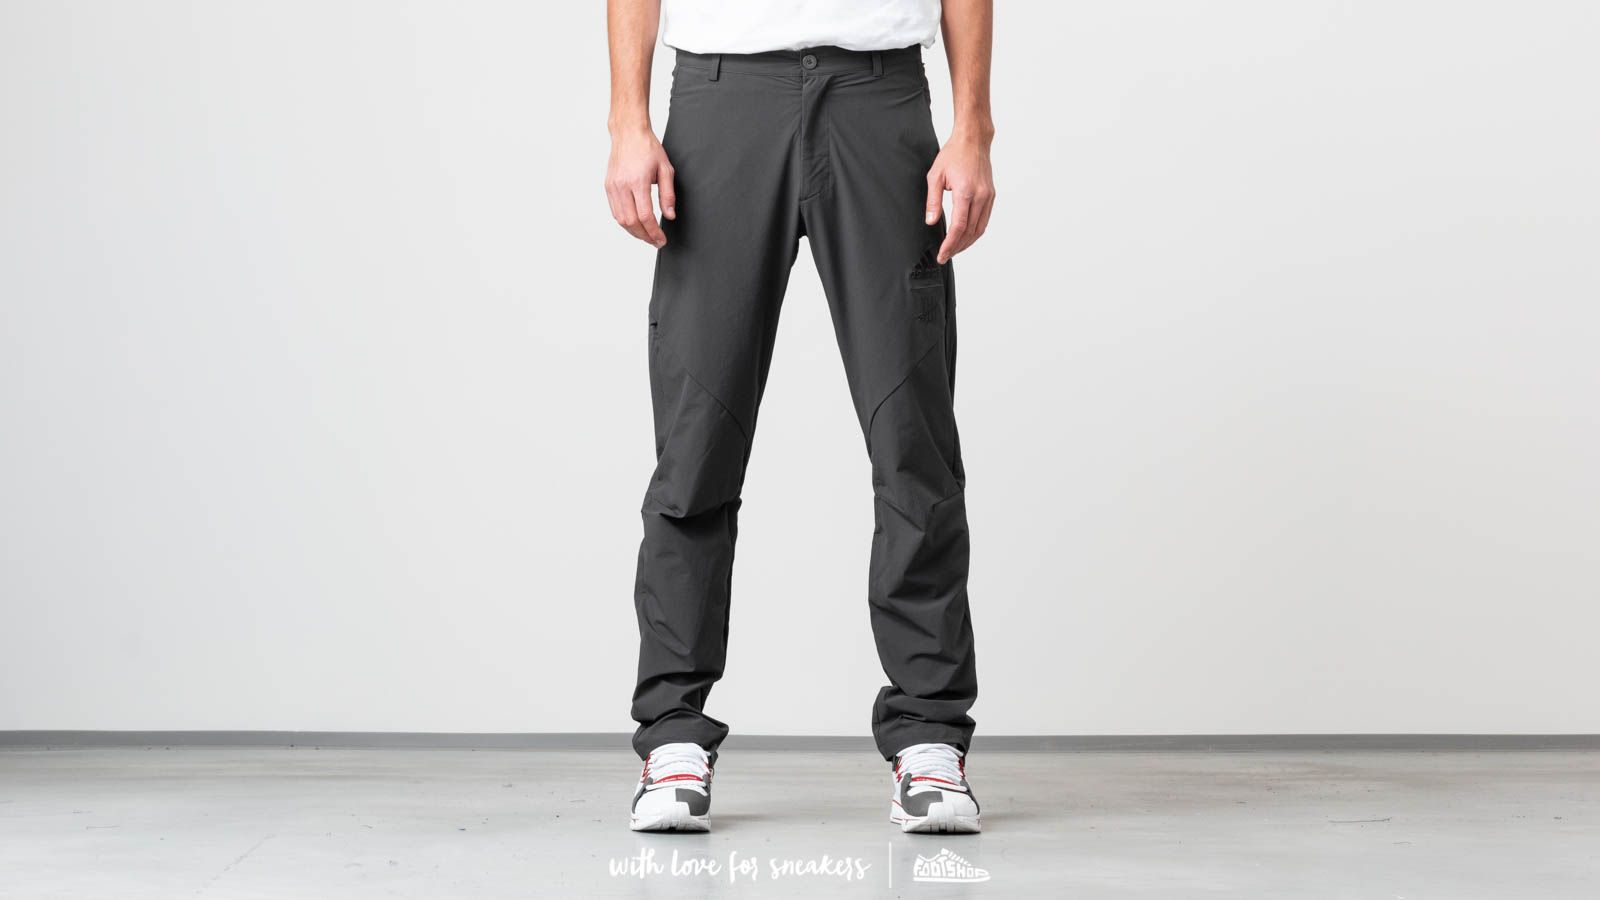 adidas x Undefeated Out Pant